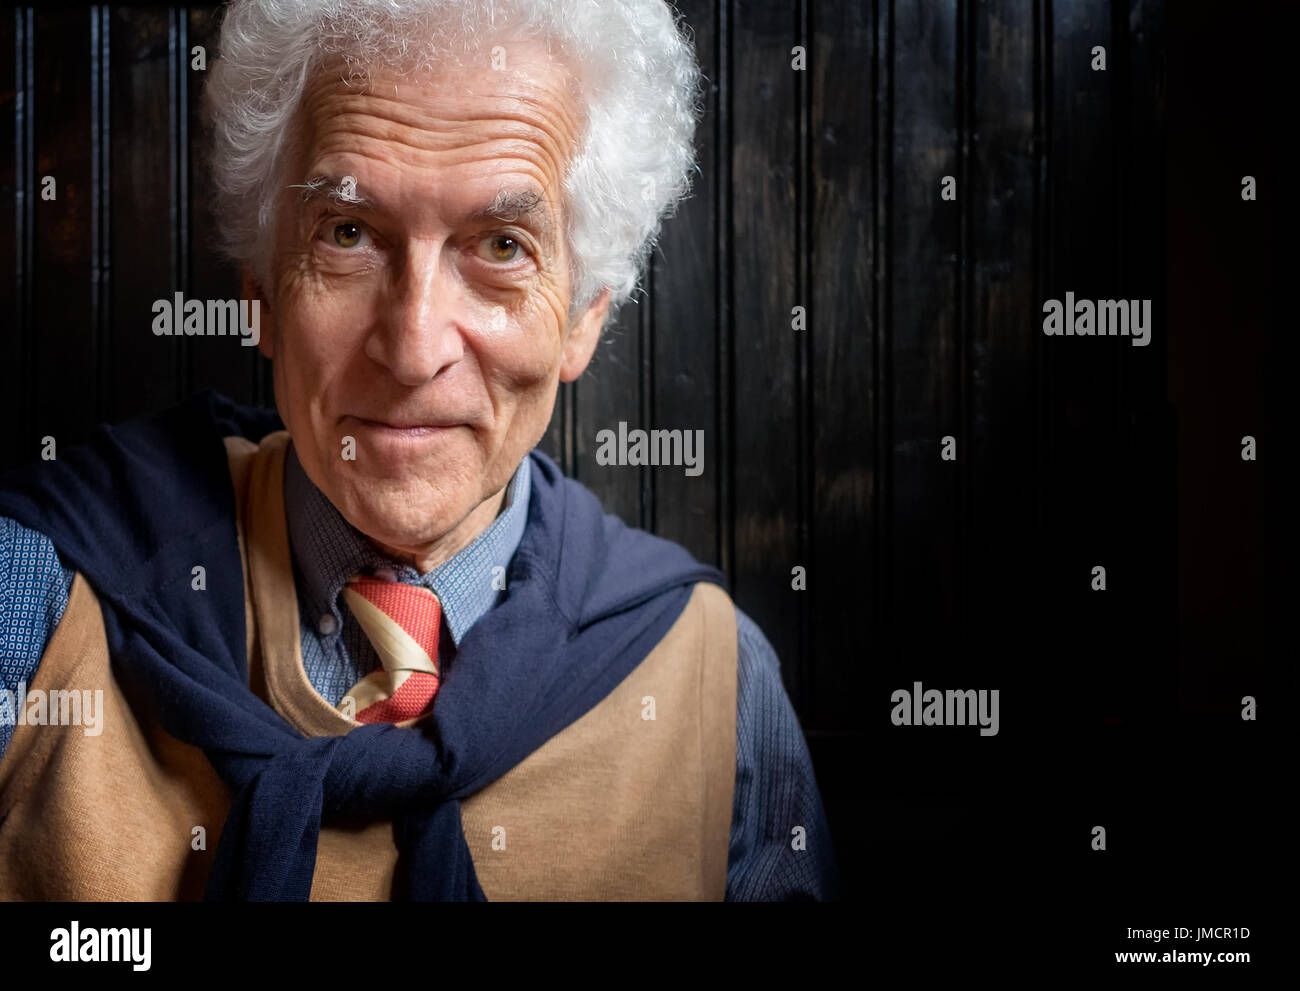 Senior man portrait. Close up, looking at camera. Smiling, well dressed, leaning against dark wall - Stock Image